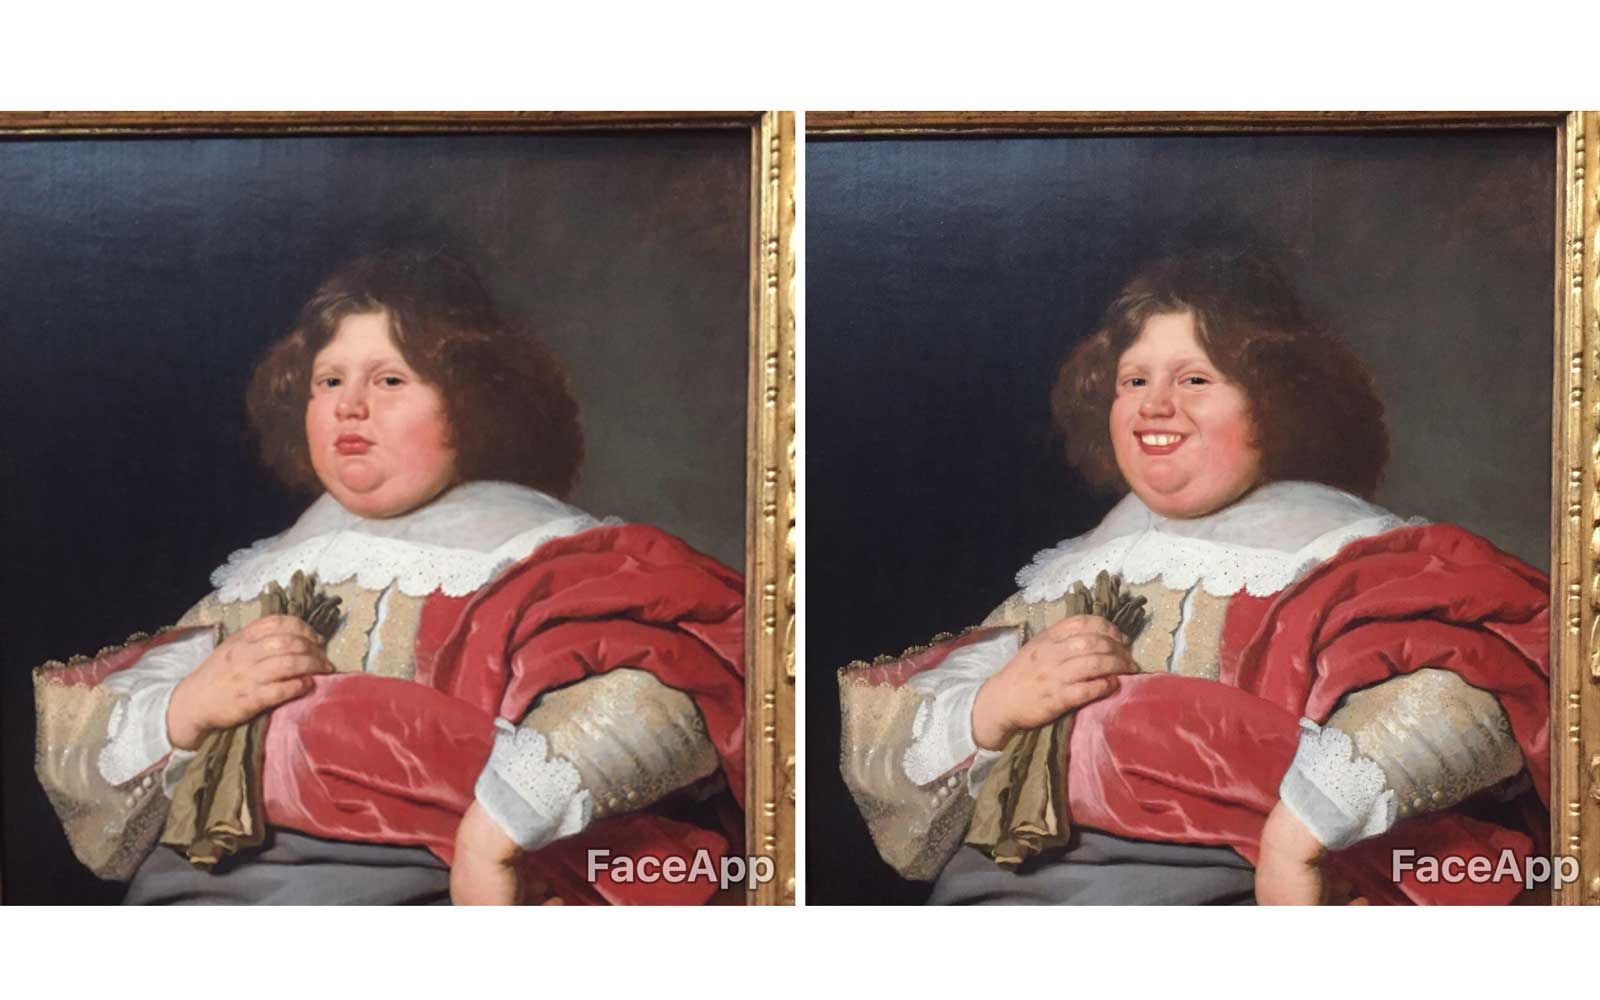 Museumgoer uses FaceApp to put smiles on the faces of artistic masterpieces